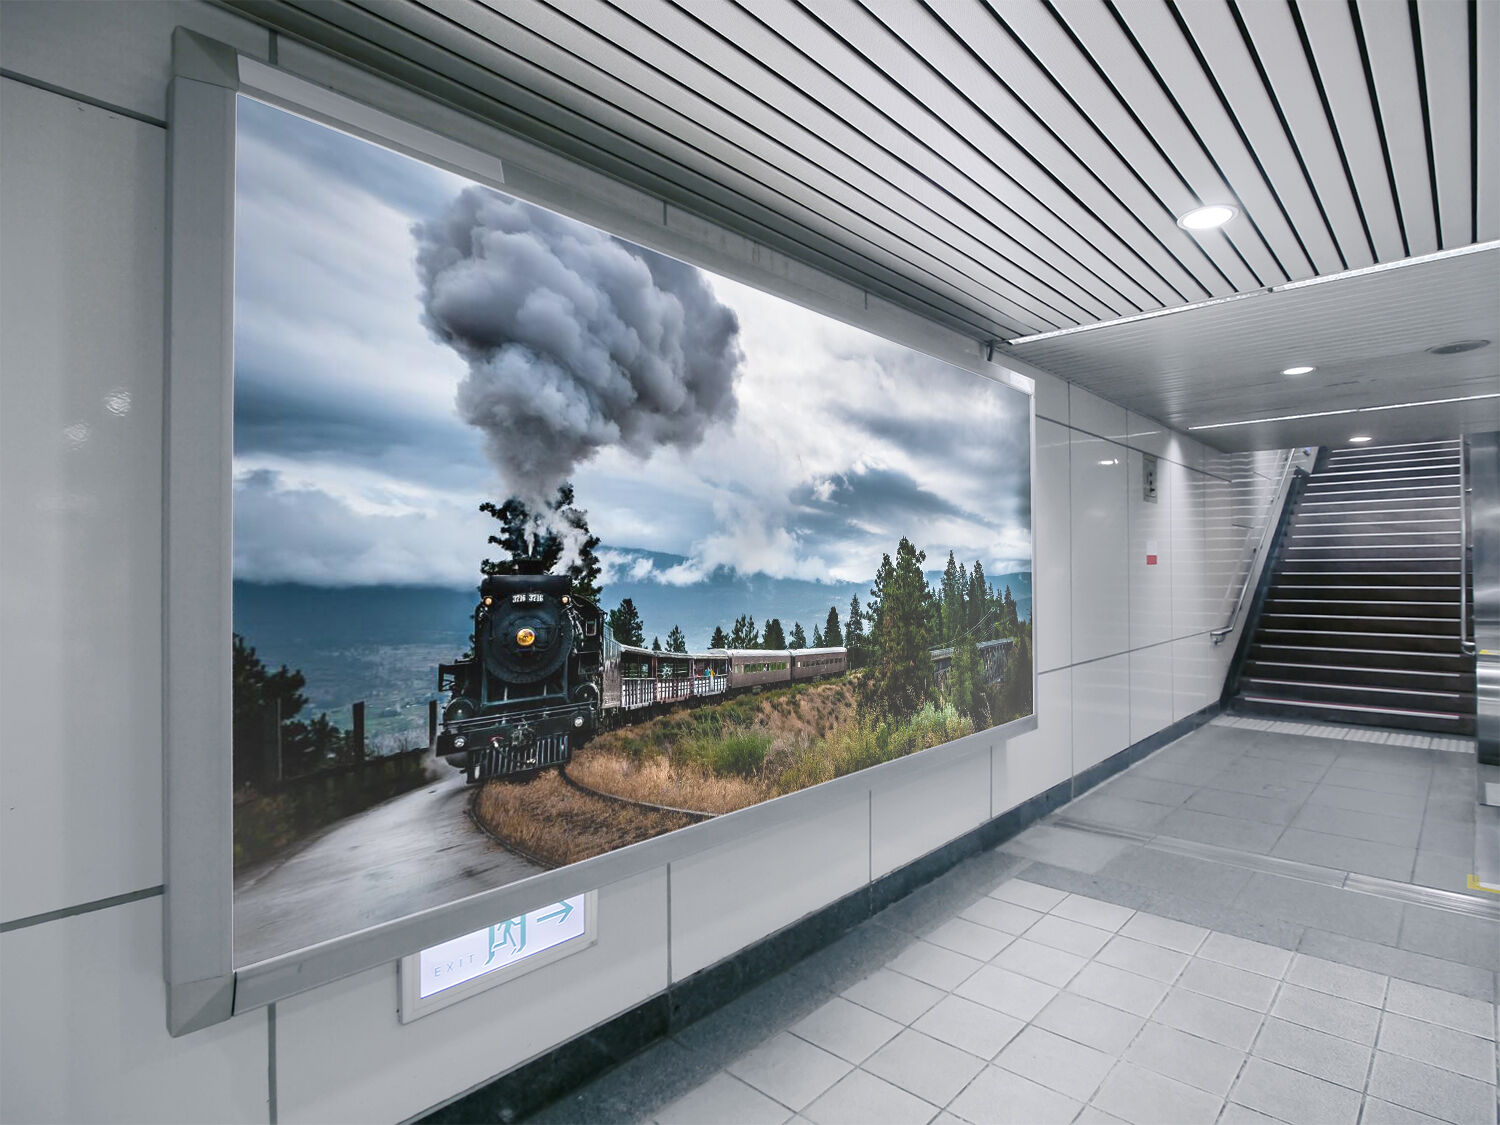 3D Train smoke 2433 Wall Paper Wall Print Decal Wall Deco Indoor Wall Murals